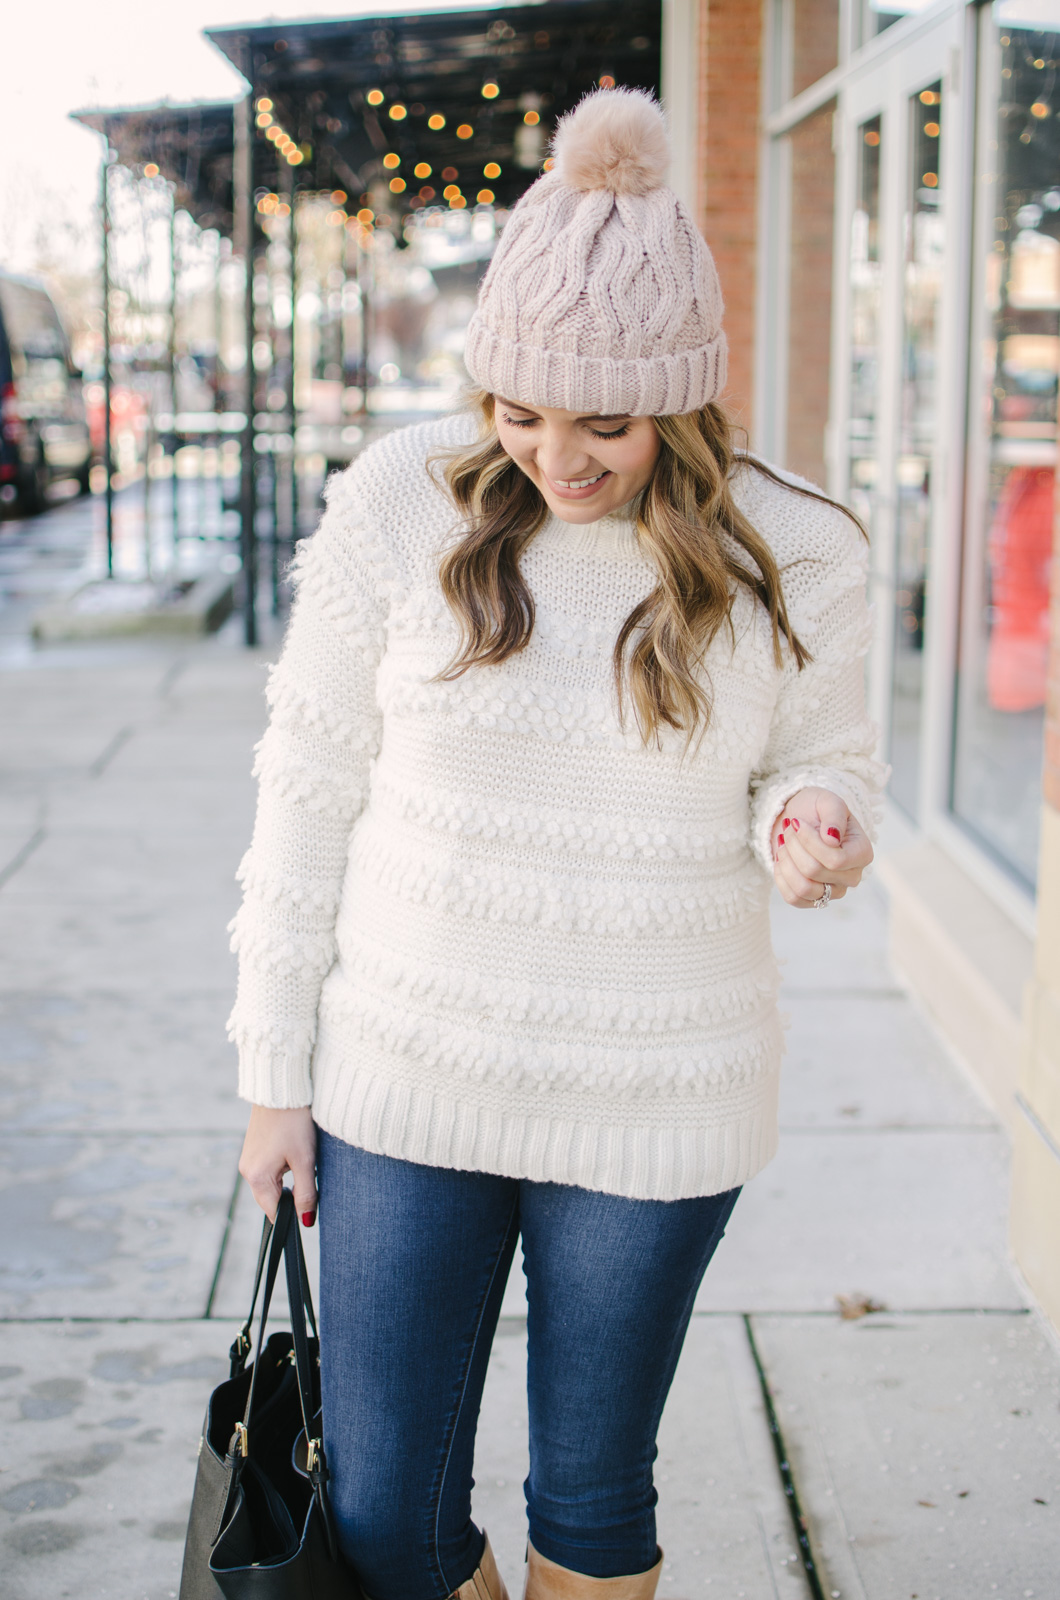 cream sweater outfit idea | Get all the outfit details and see more cute Winter outfits at bylaurenm.com!